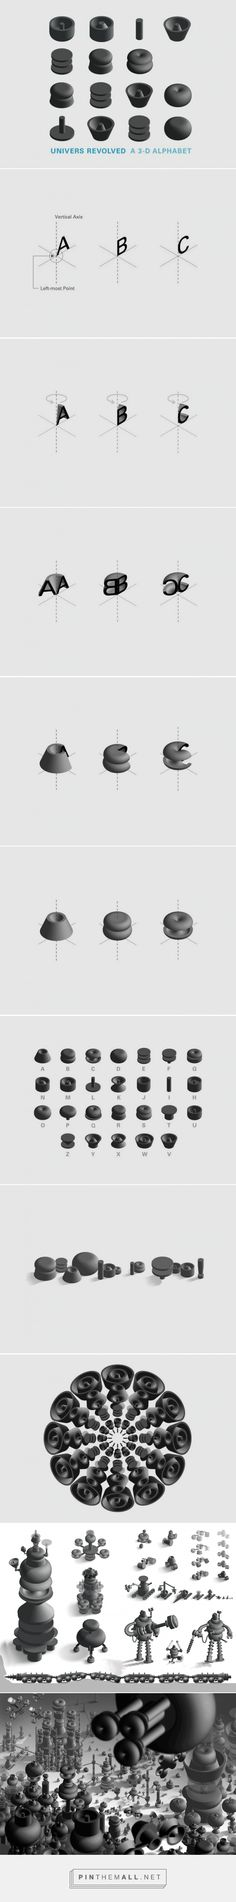 The genius of creative director Ji Lee – 3D alphabet